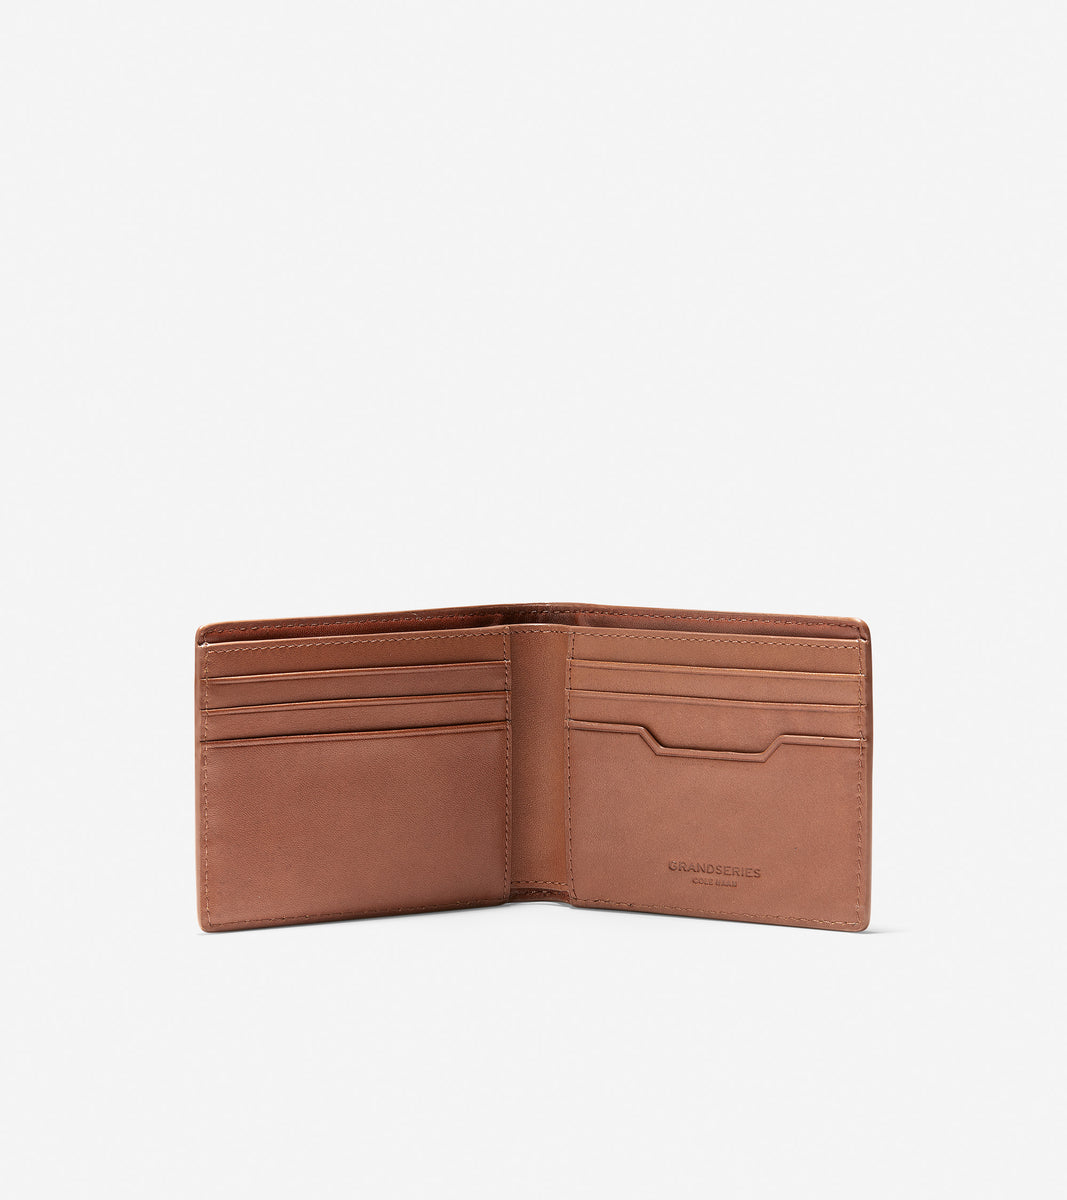 GRANDSERIES Leather Slim Bifold